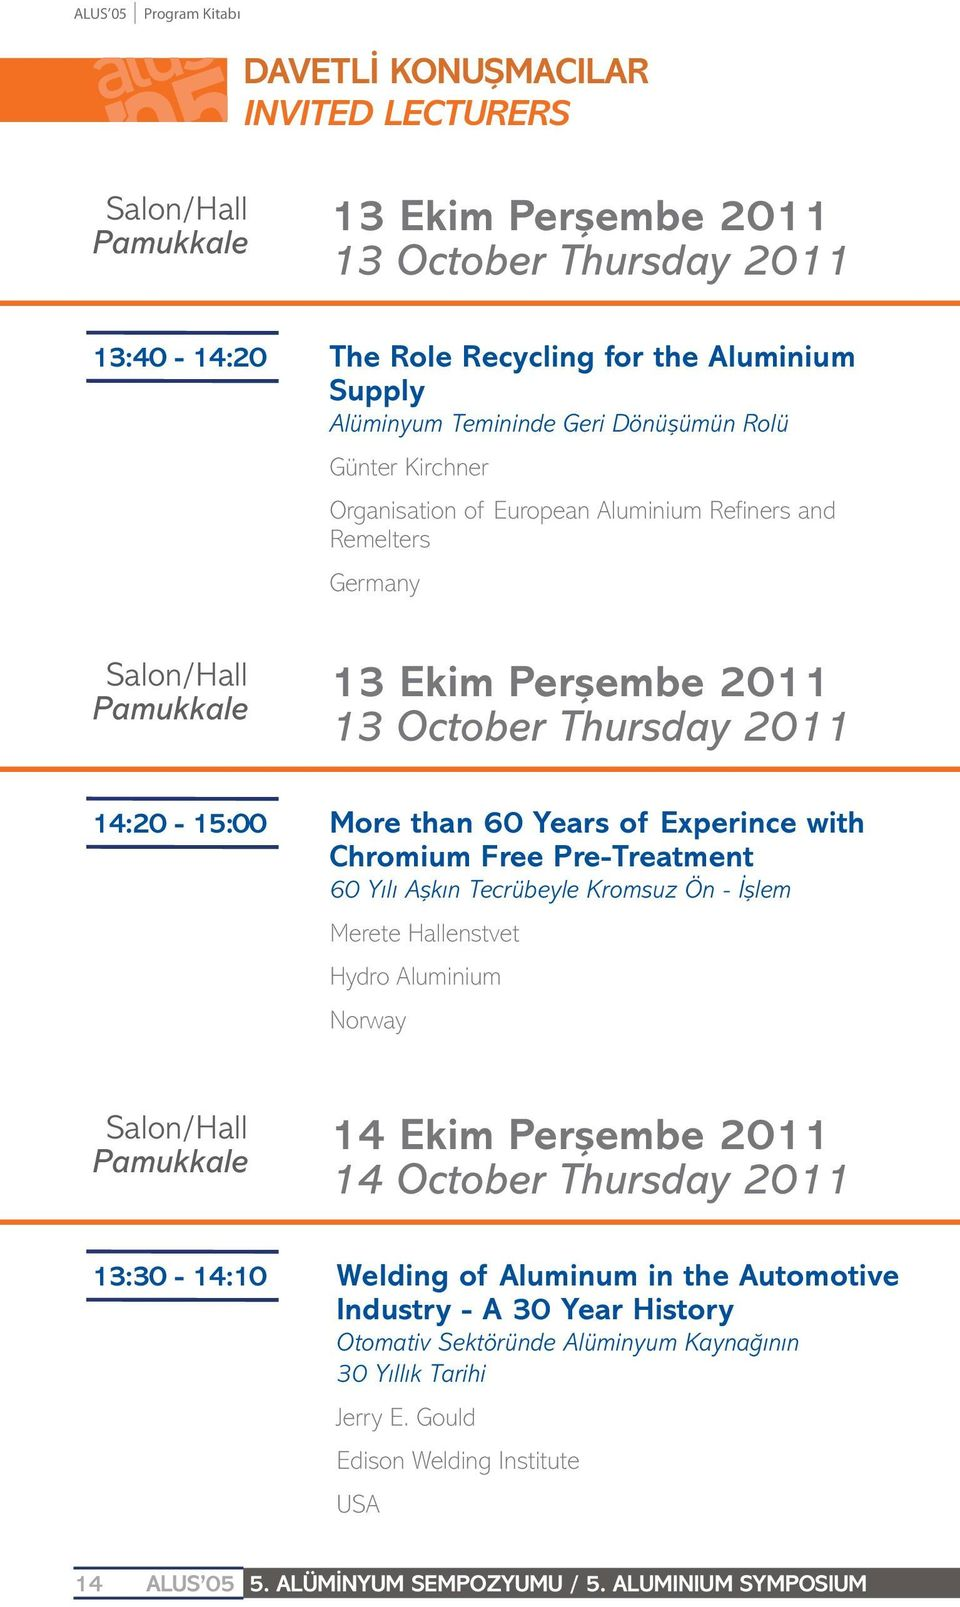 than 60 Years of Experince with Chromium Free Pre-Treatment 60 Yılı Aşkın Tecrübeyle Kromsuz Ön - İşlem Merete Hallenstvet Hydro Aluminium Norway Salon/Hall Pamukkale 14 Ekim Perşembe 2011 14 October